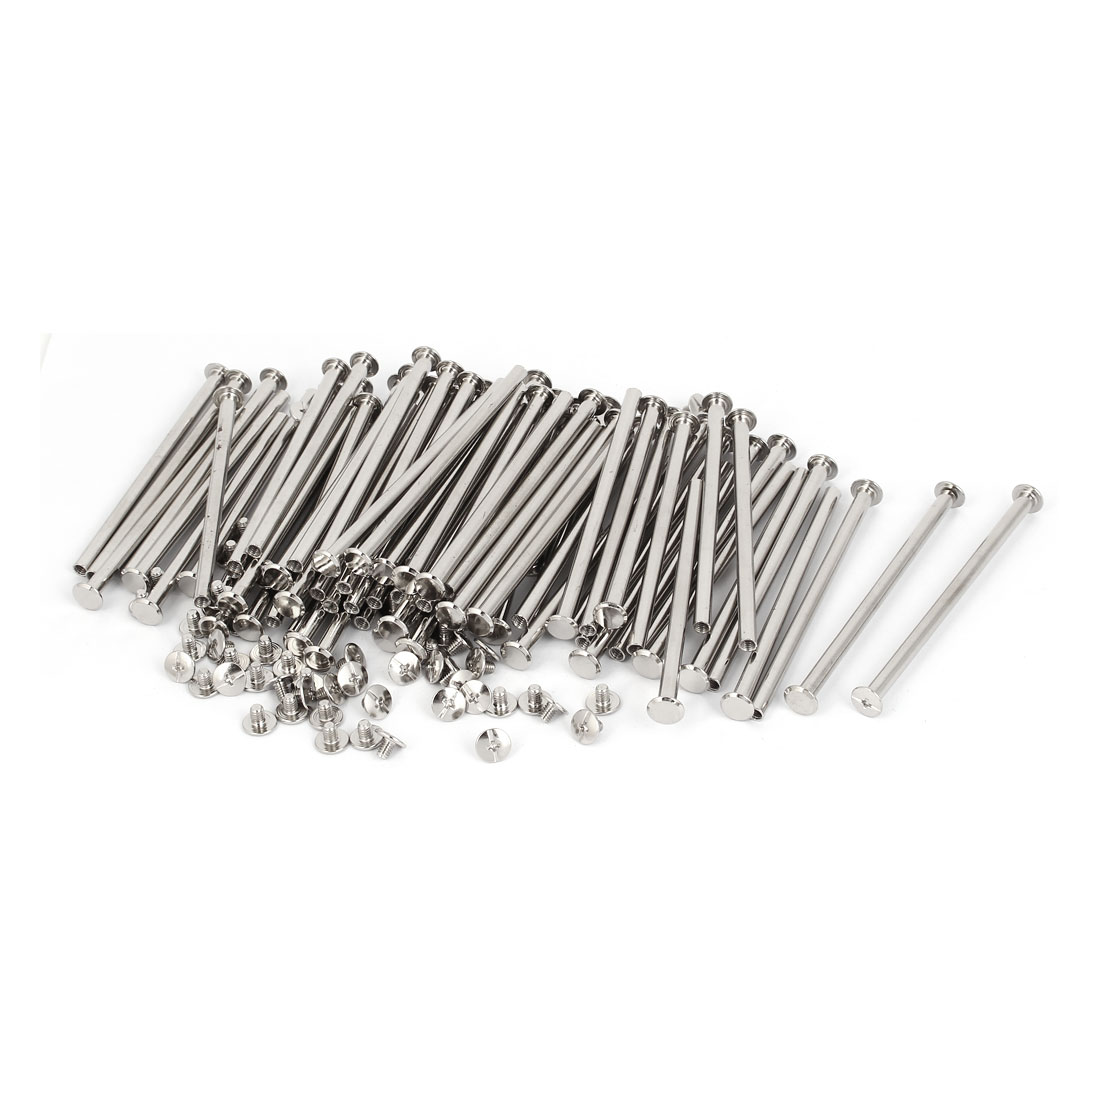 M5x95mm Binding Chicago Screw Post 100pcs for Photo Albums Scrapbook